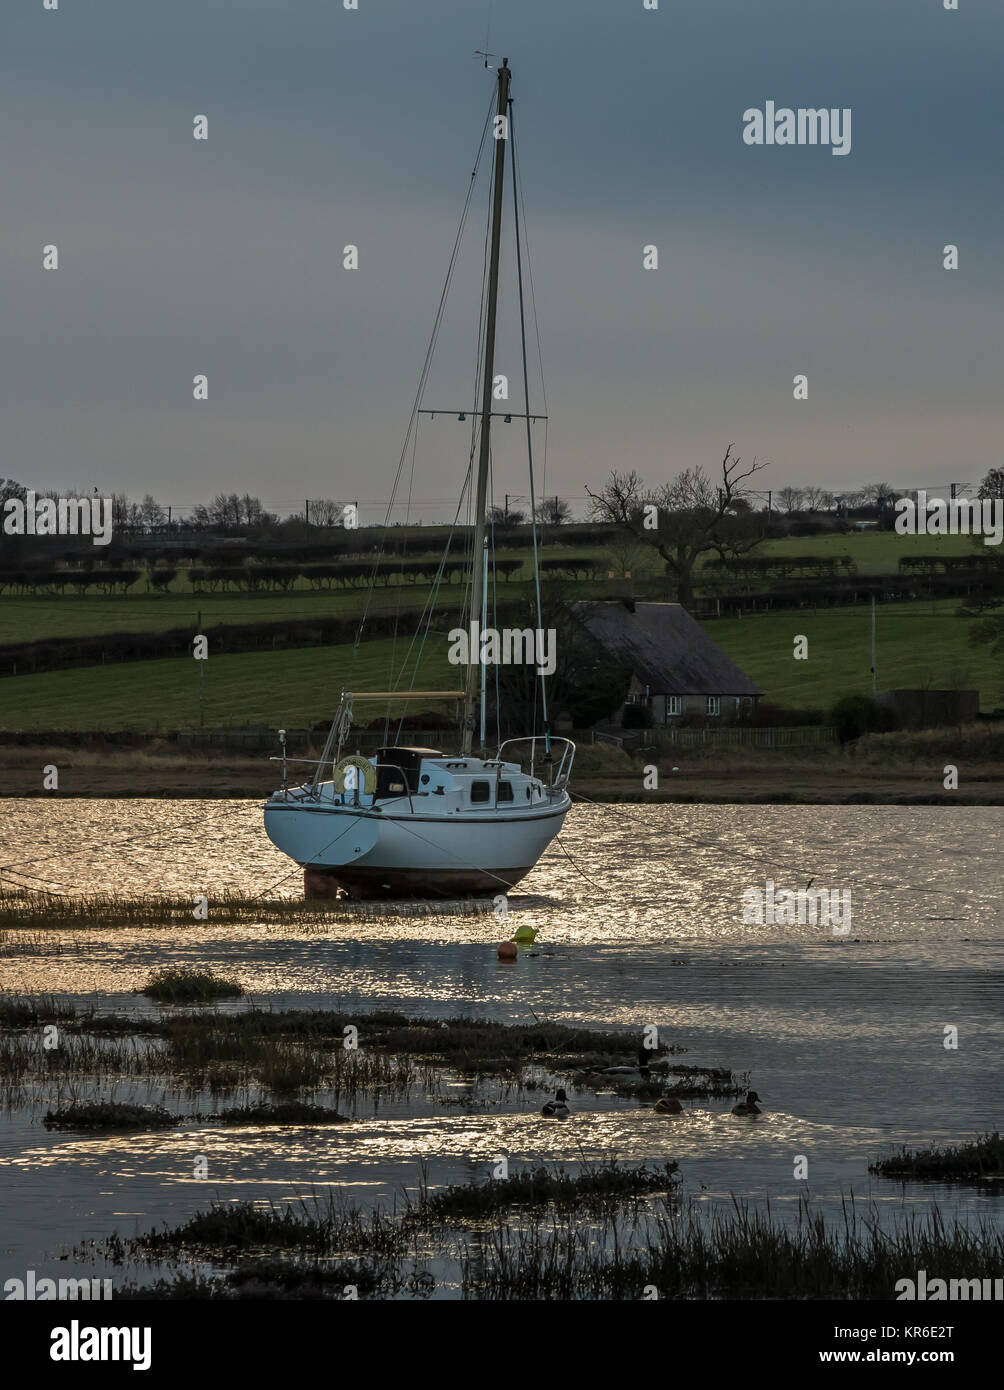 A single yacht moored in Alnmouth Harbour, Northumberland, UK, in late afternoon winter sunshine with a dark sky - Stock Image